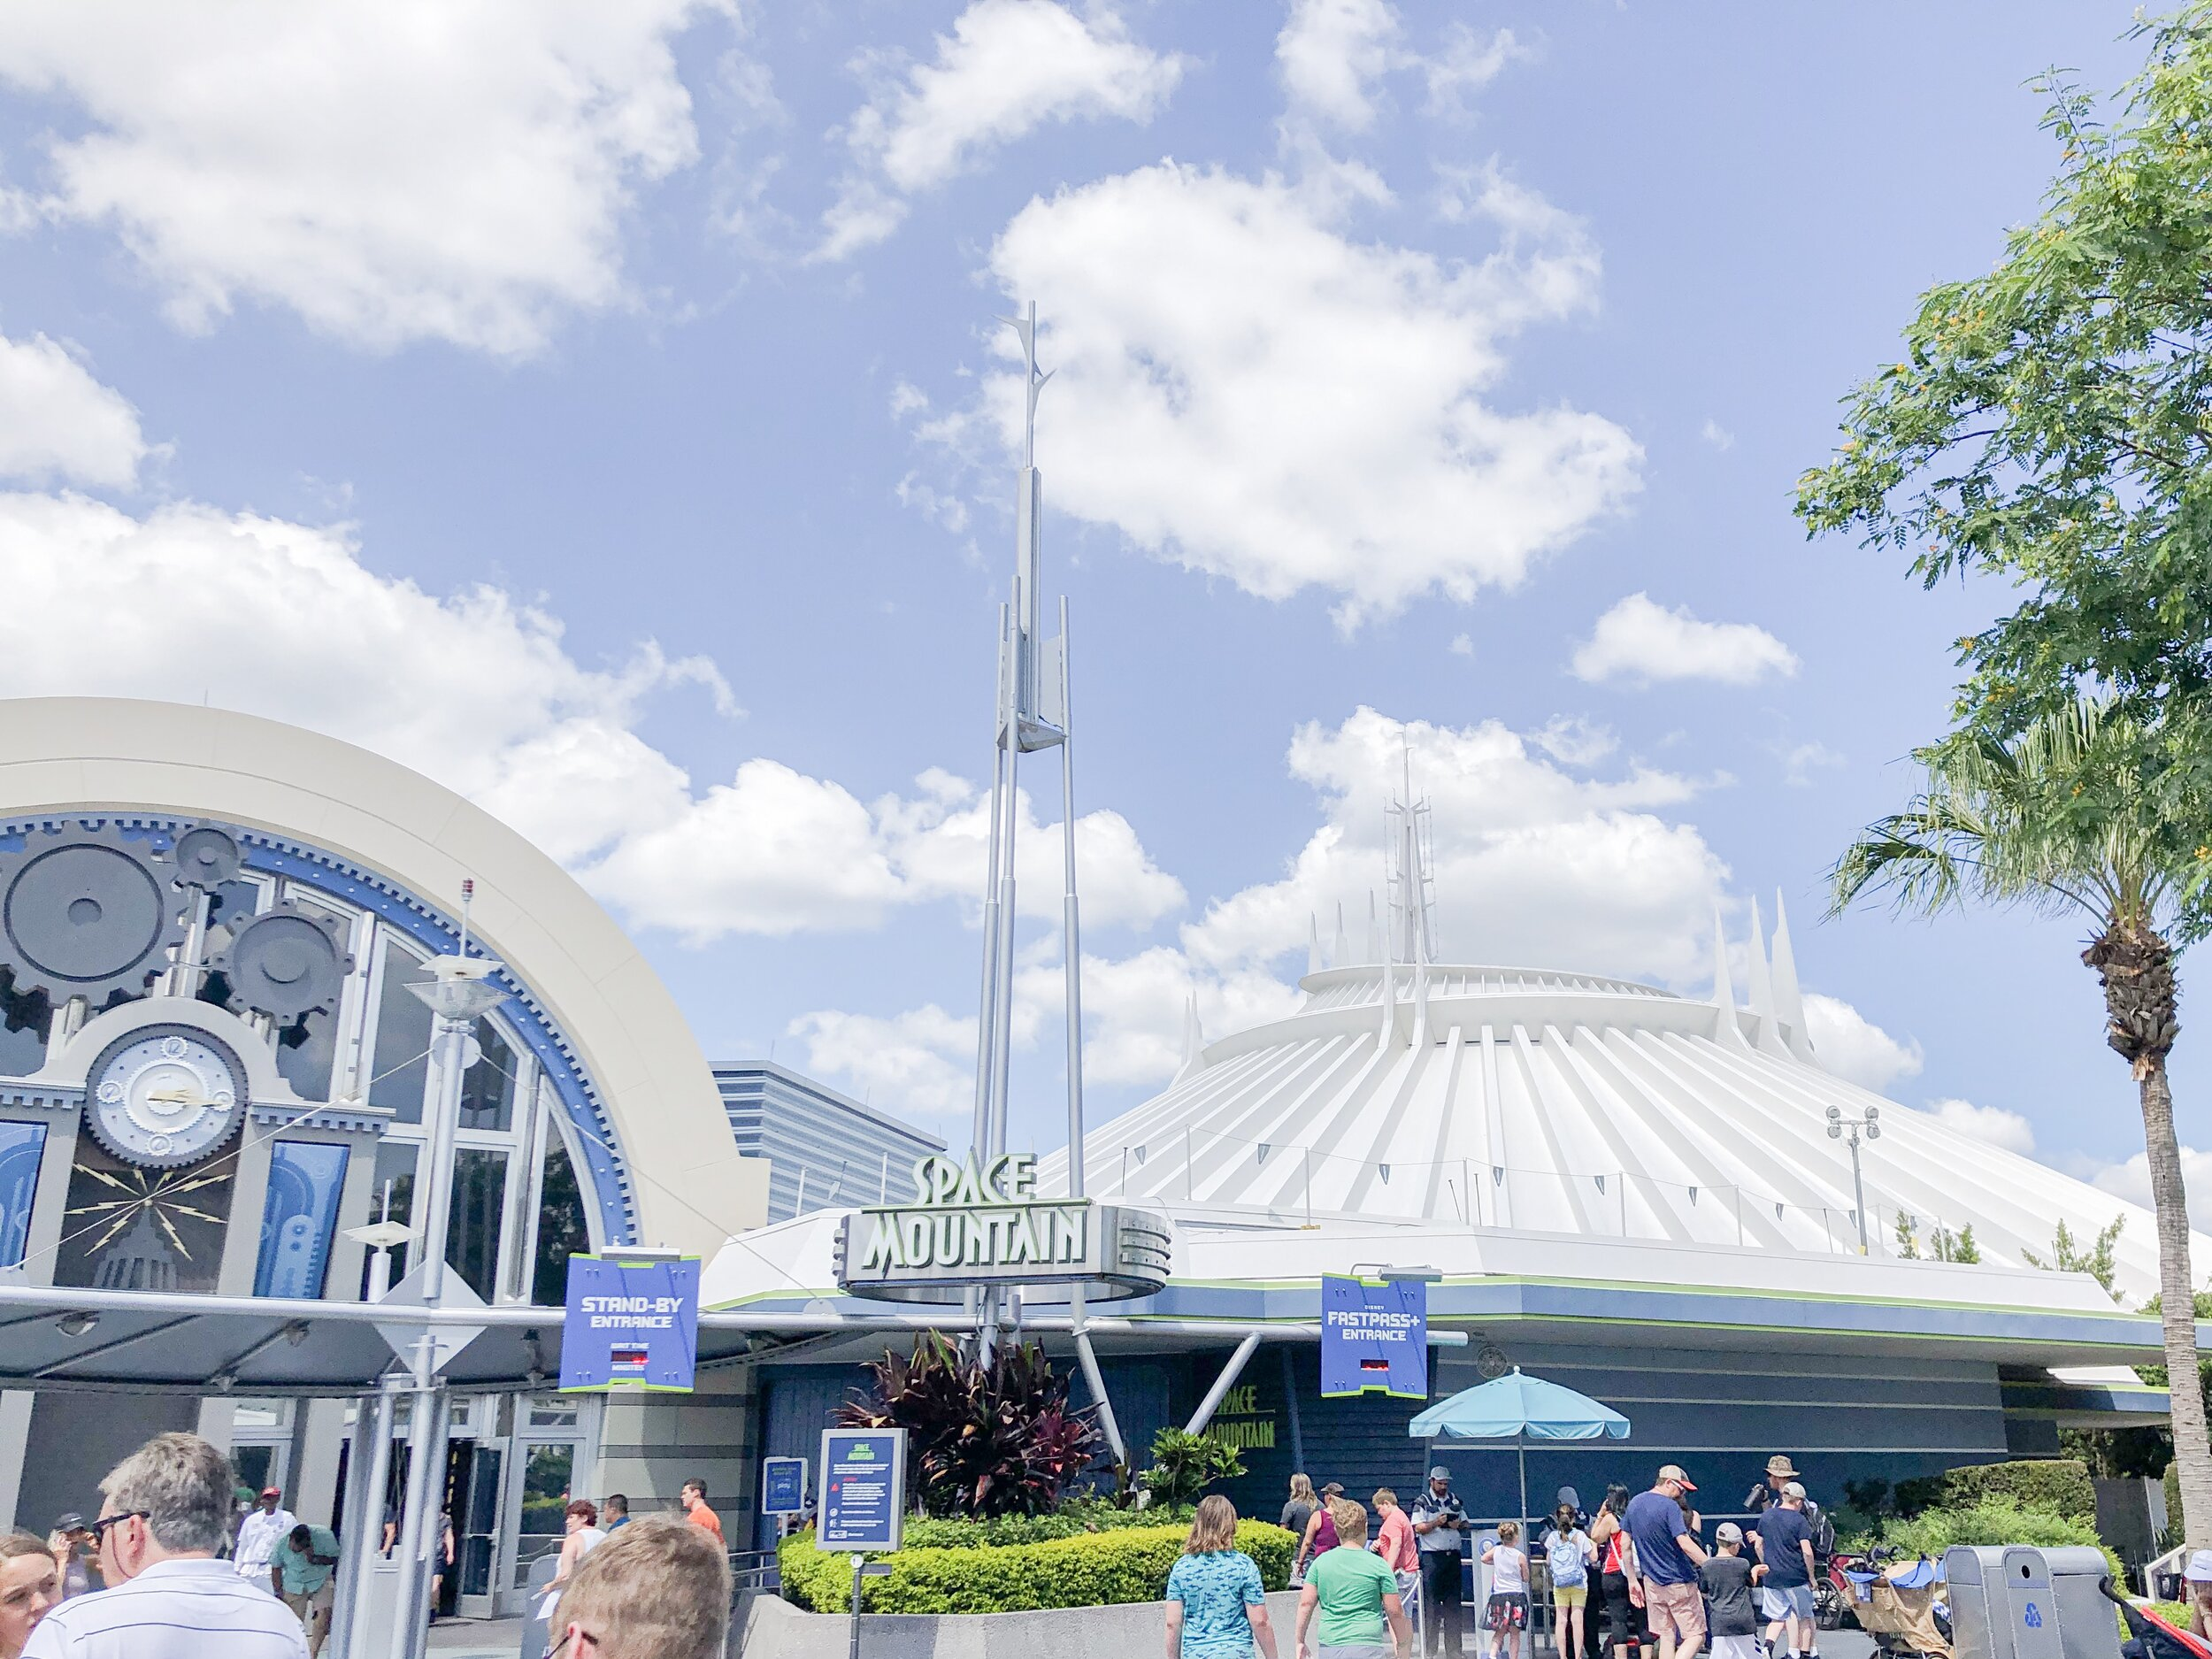 Space Mountain roller coaster building at Disney World.